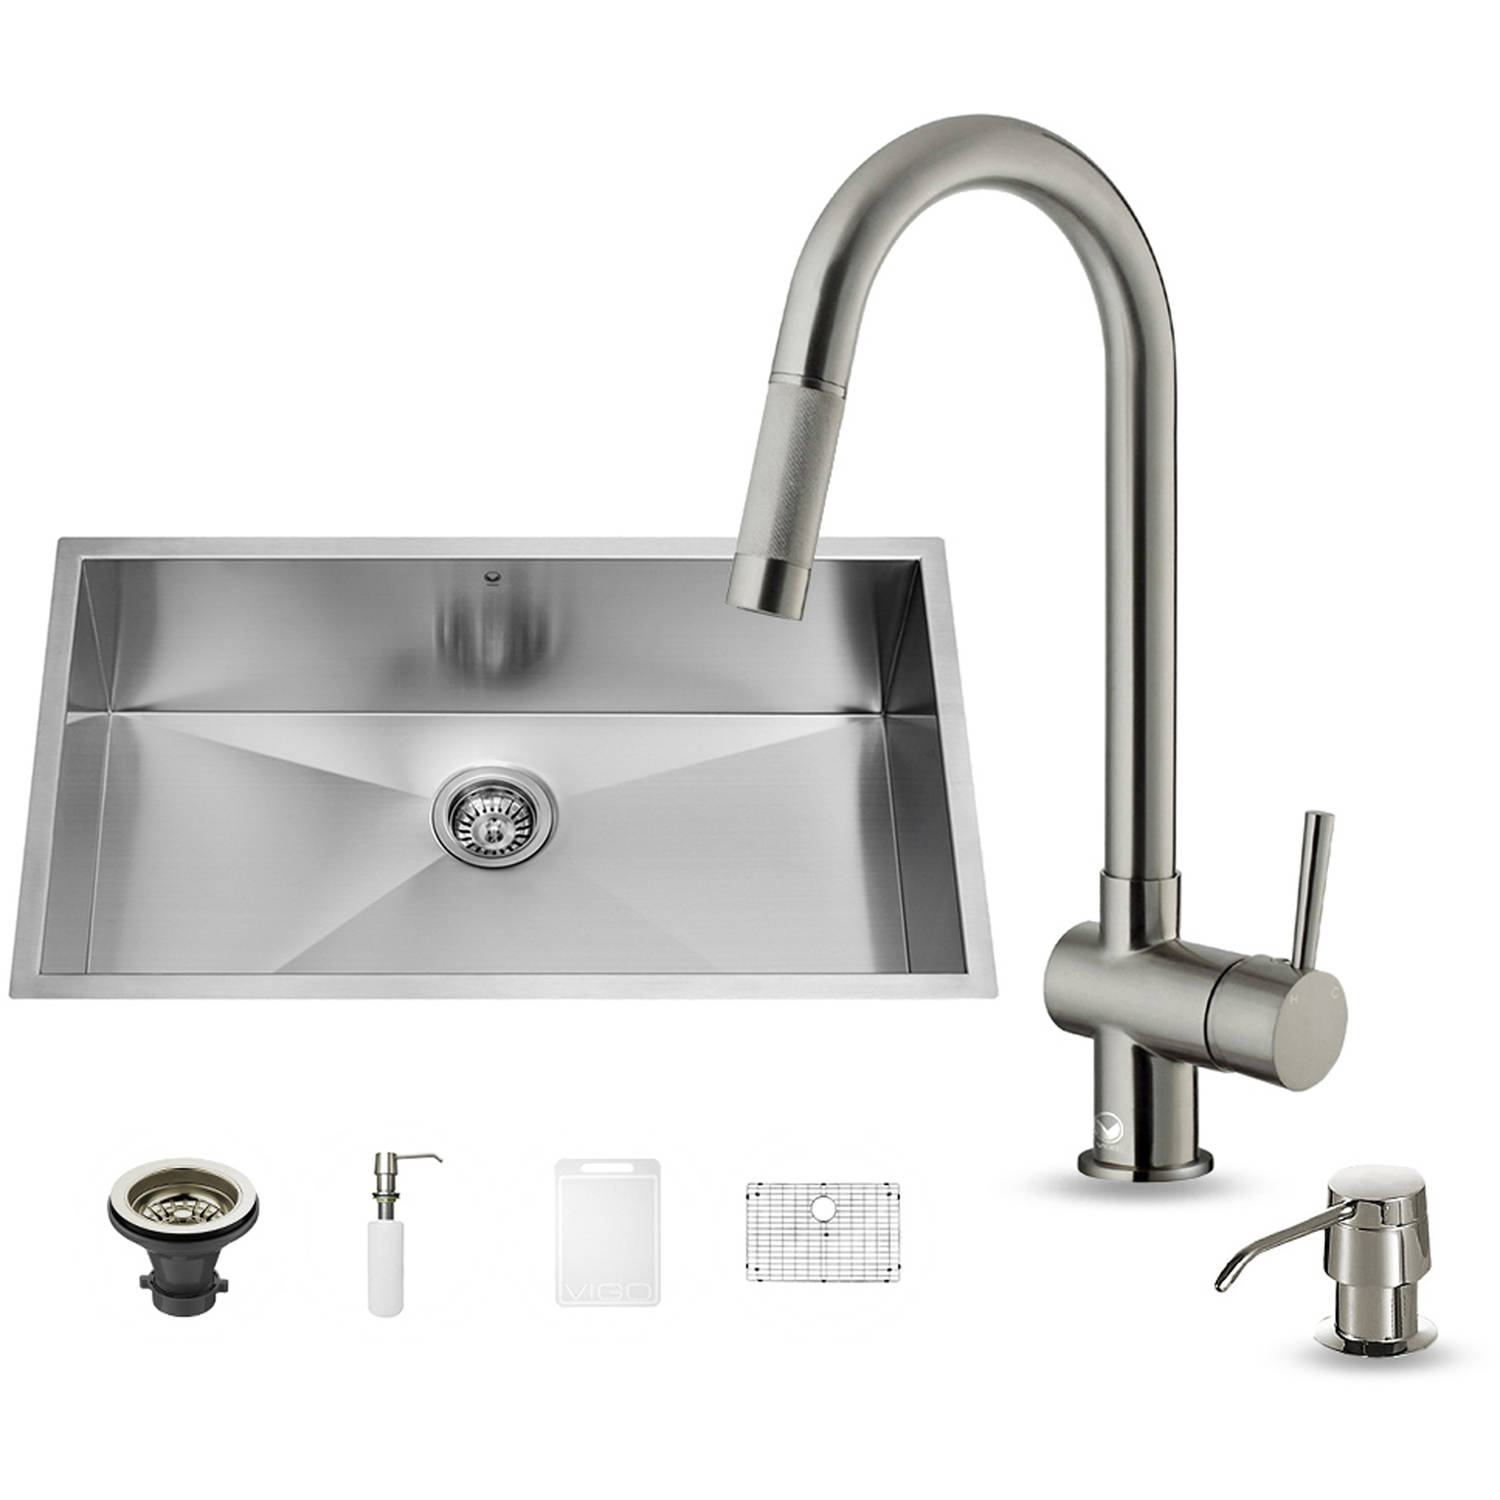 """Vigo All-in-One 30"""" Undermount Stainless Steel Kitchen Sink and Faucet Set"""